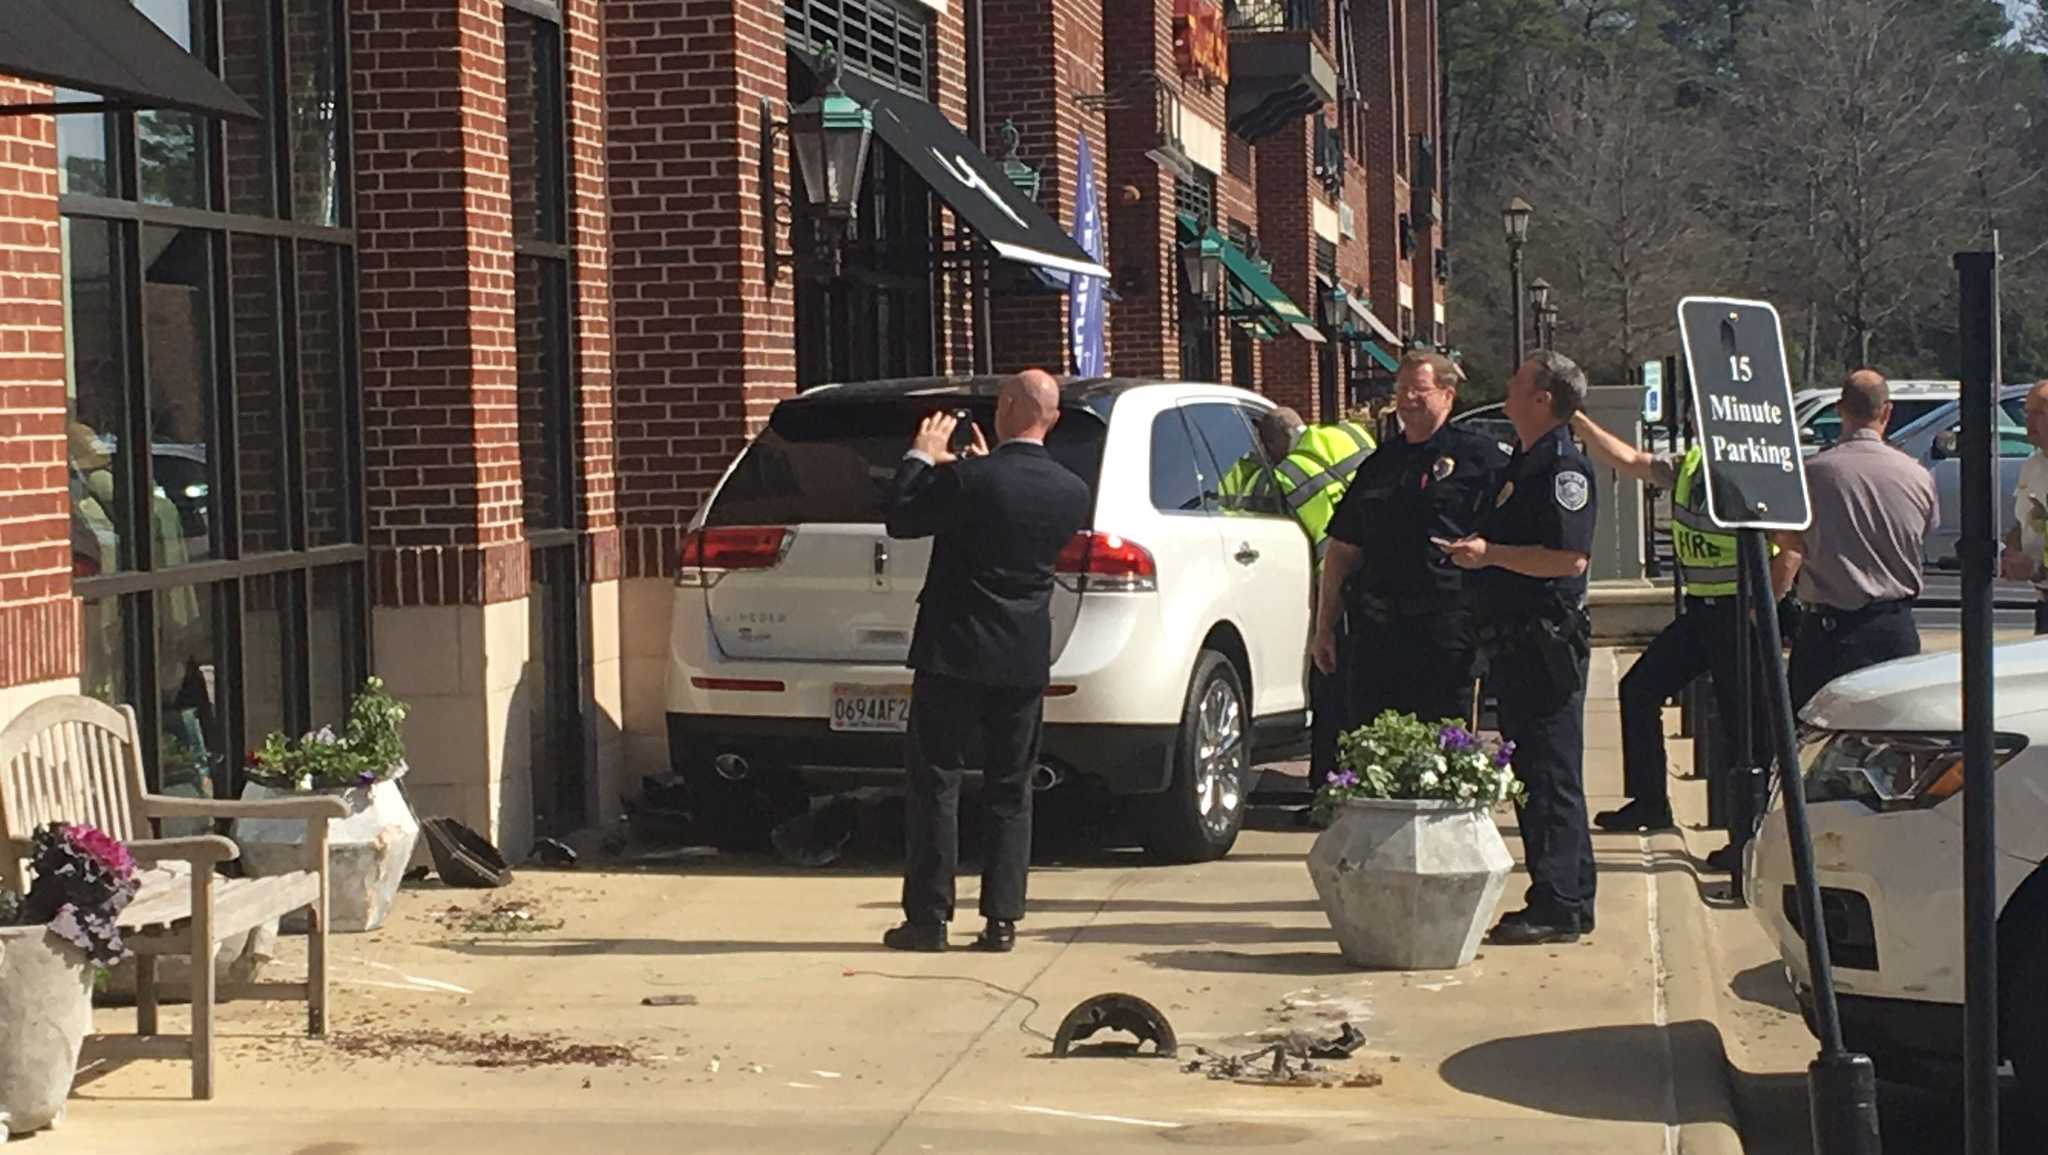 An SUV jumped the curb and crashed into a light pole at the Cahaba Village Plaza shopping center in Mountain Brook on Friday.